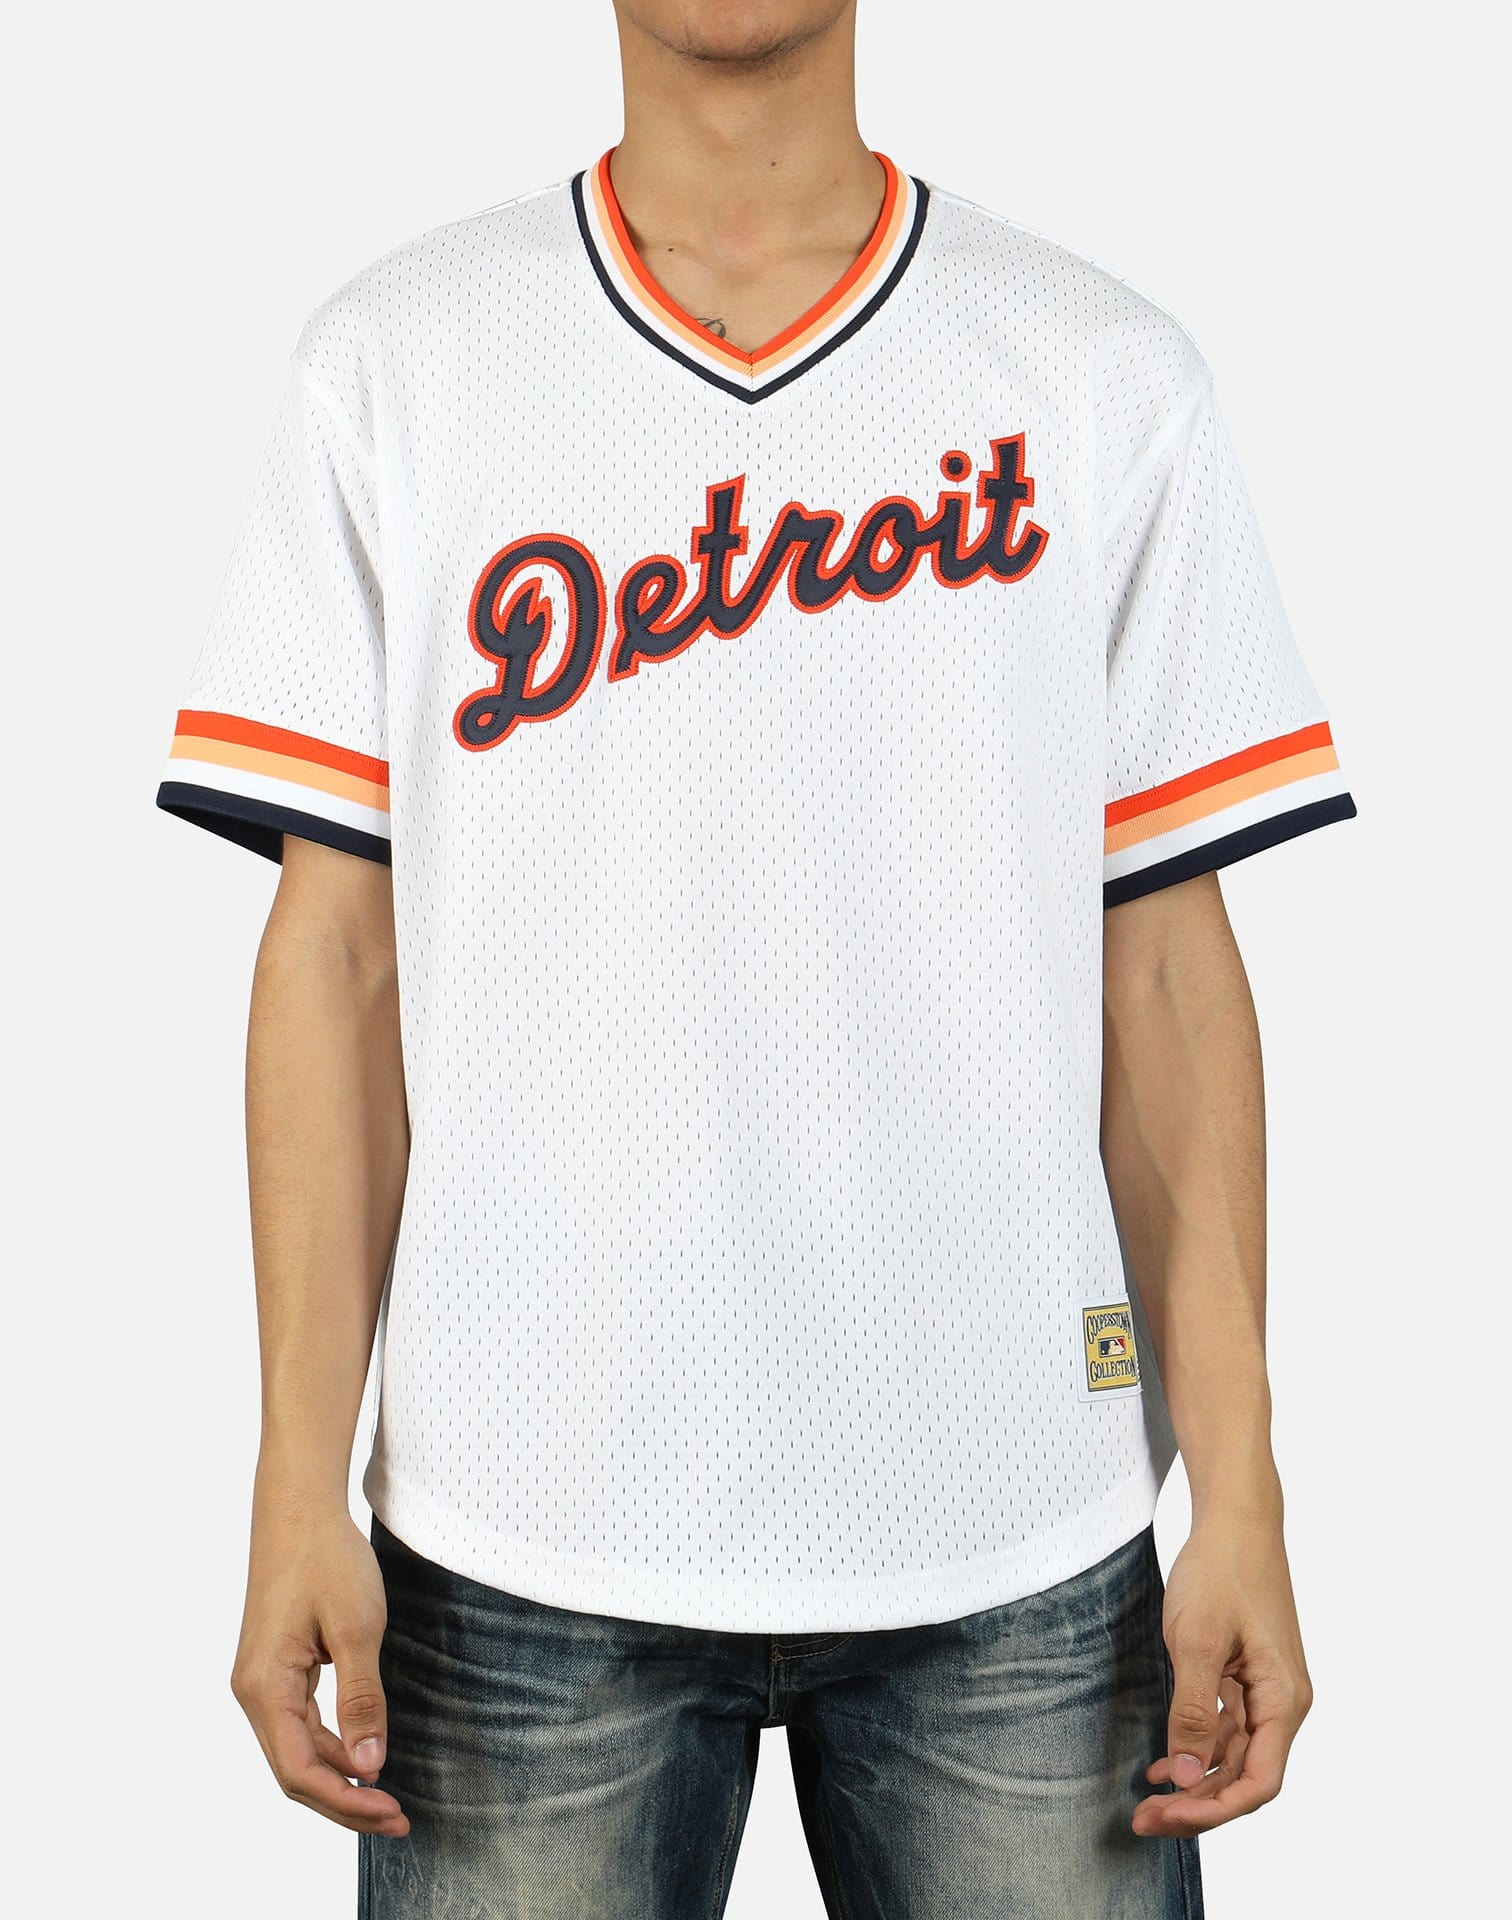 Mitchell & Ness Men's MLB Detroit Tigers Mesh V-Neck Jersey